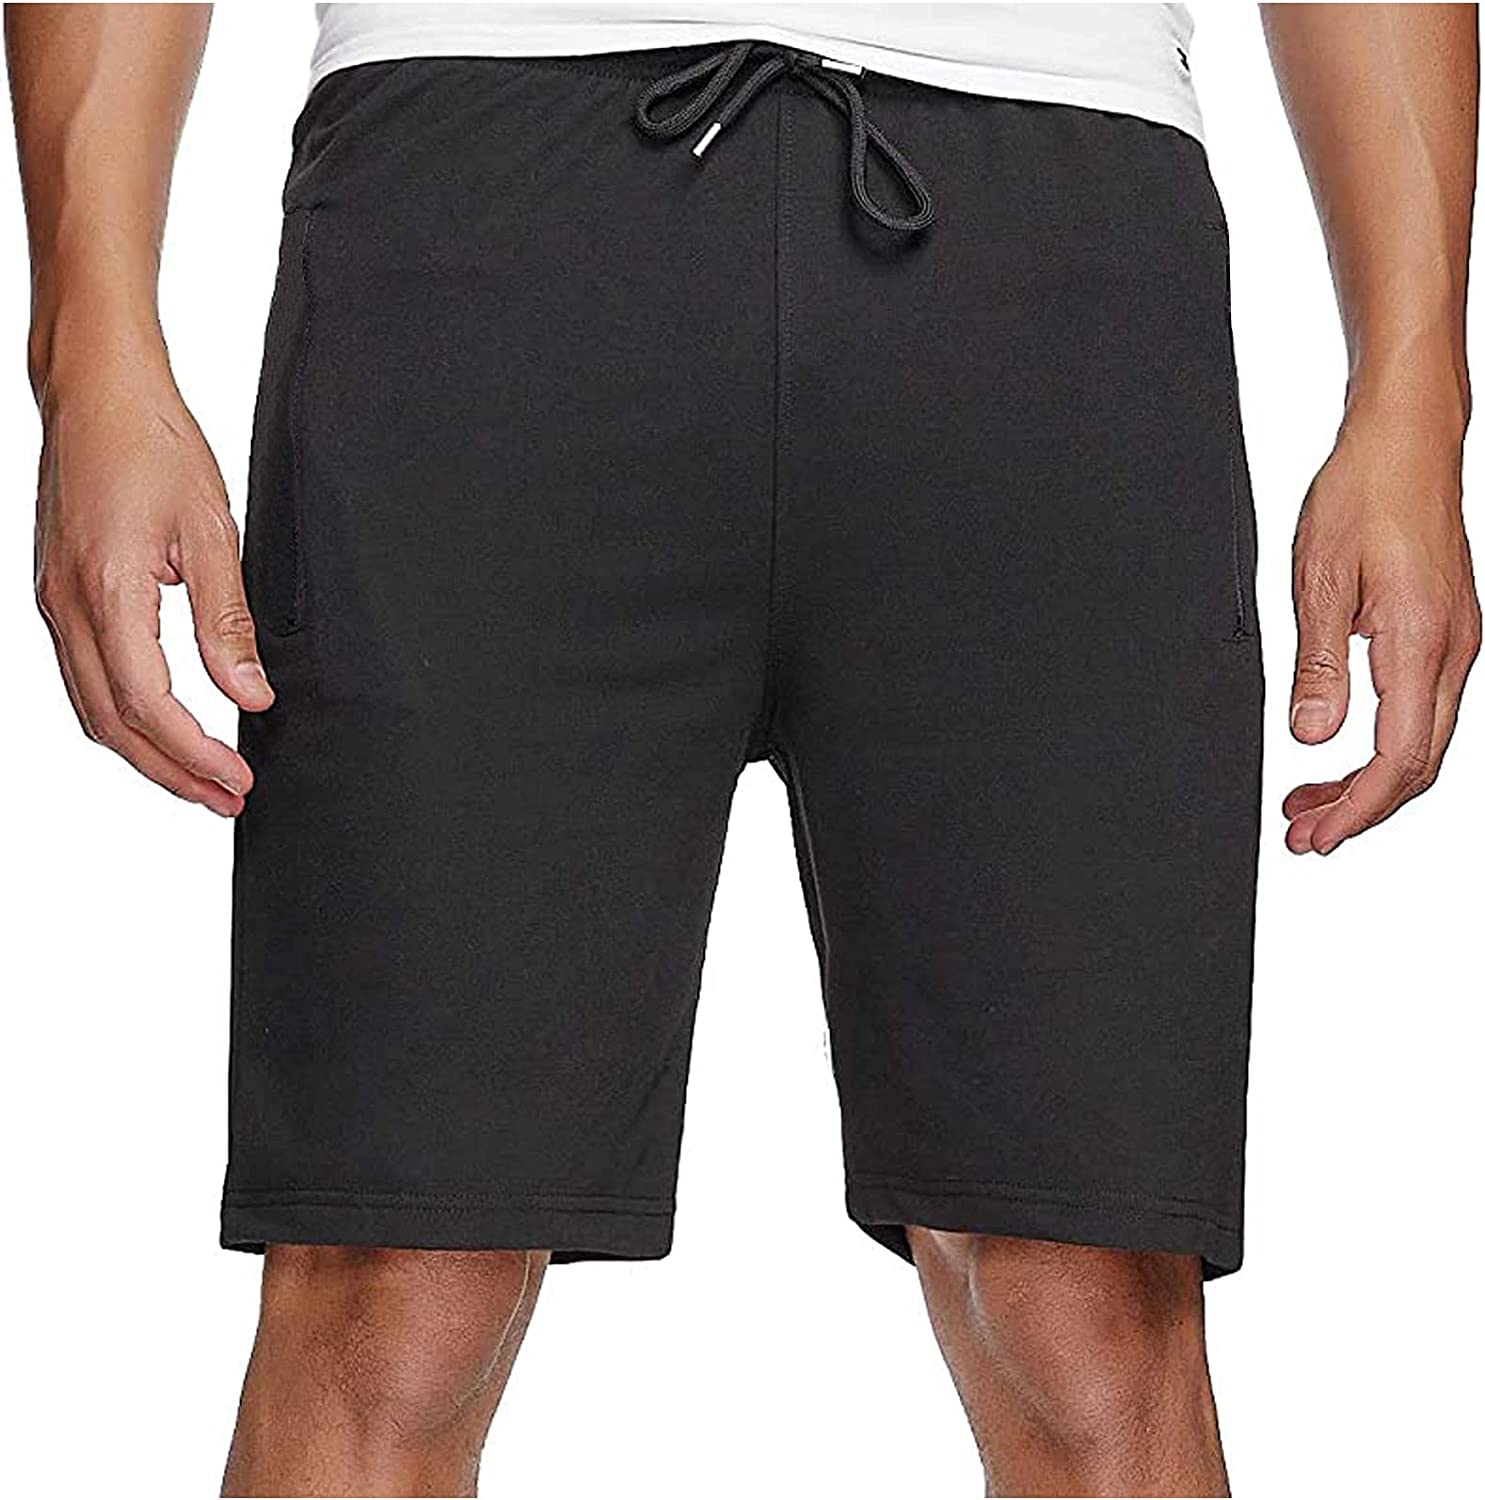 ZCAITIANYA Men's Casual Shorts Solid Color Slim Fit Cotton Summer Beach with Elastic Waist and Pockets